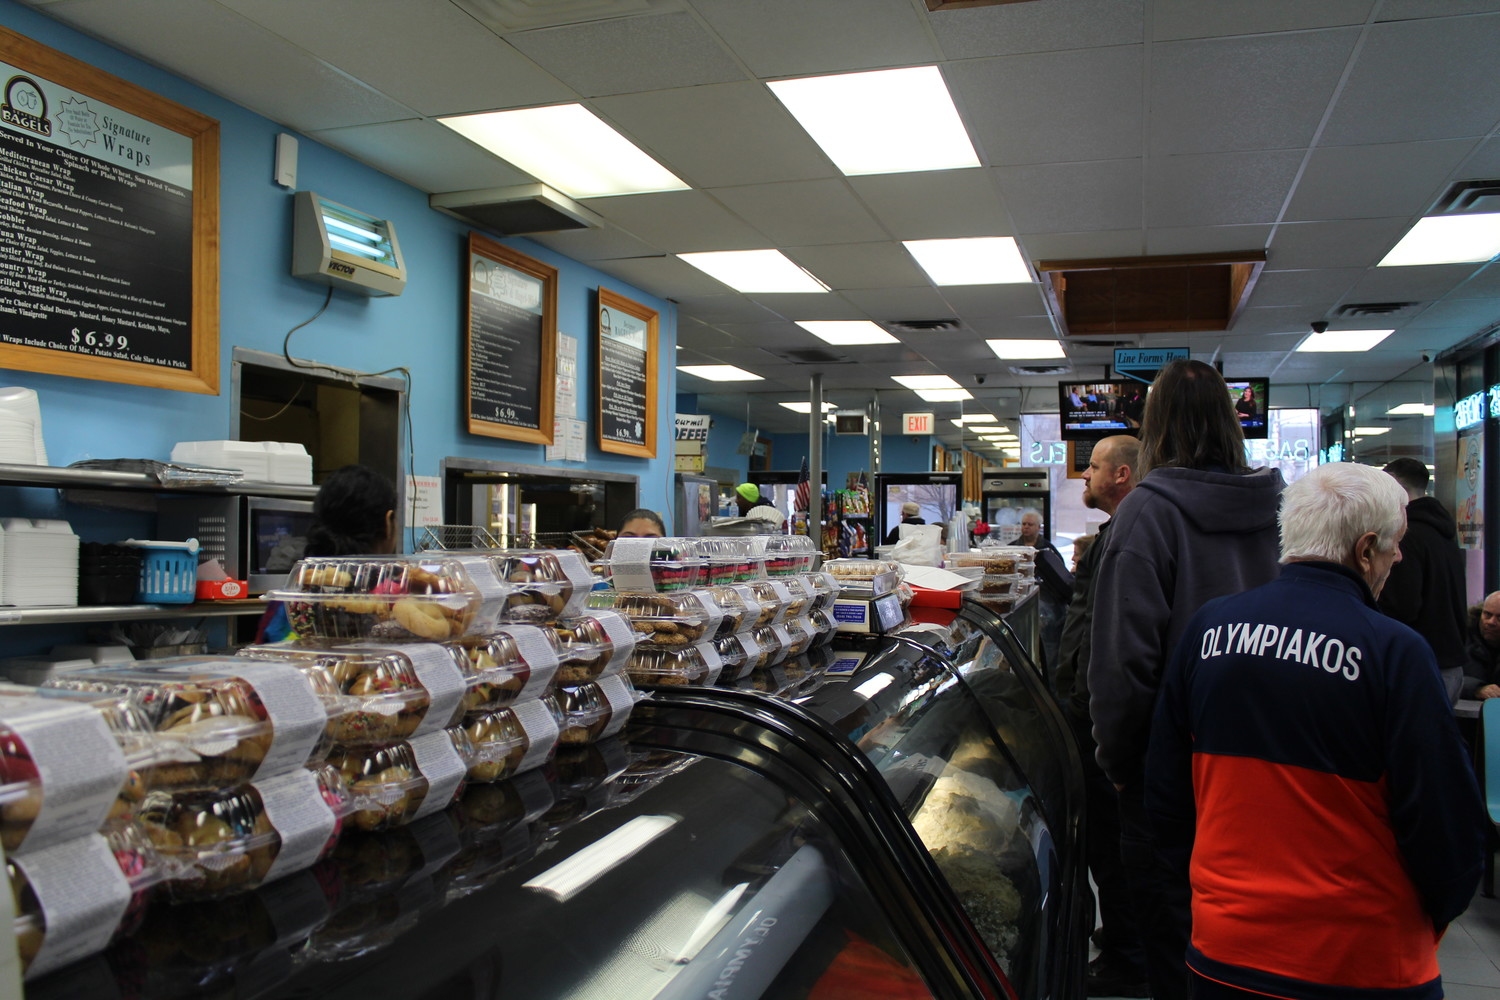 On average, Seaford Bagels sells about 48,000 bagels a week to customers from Seaford and the surrounding hamlets.